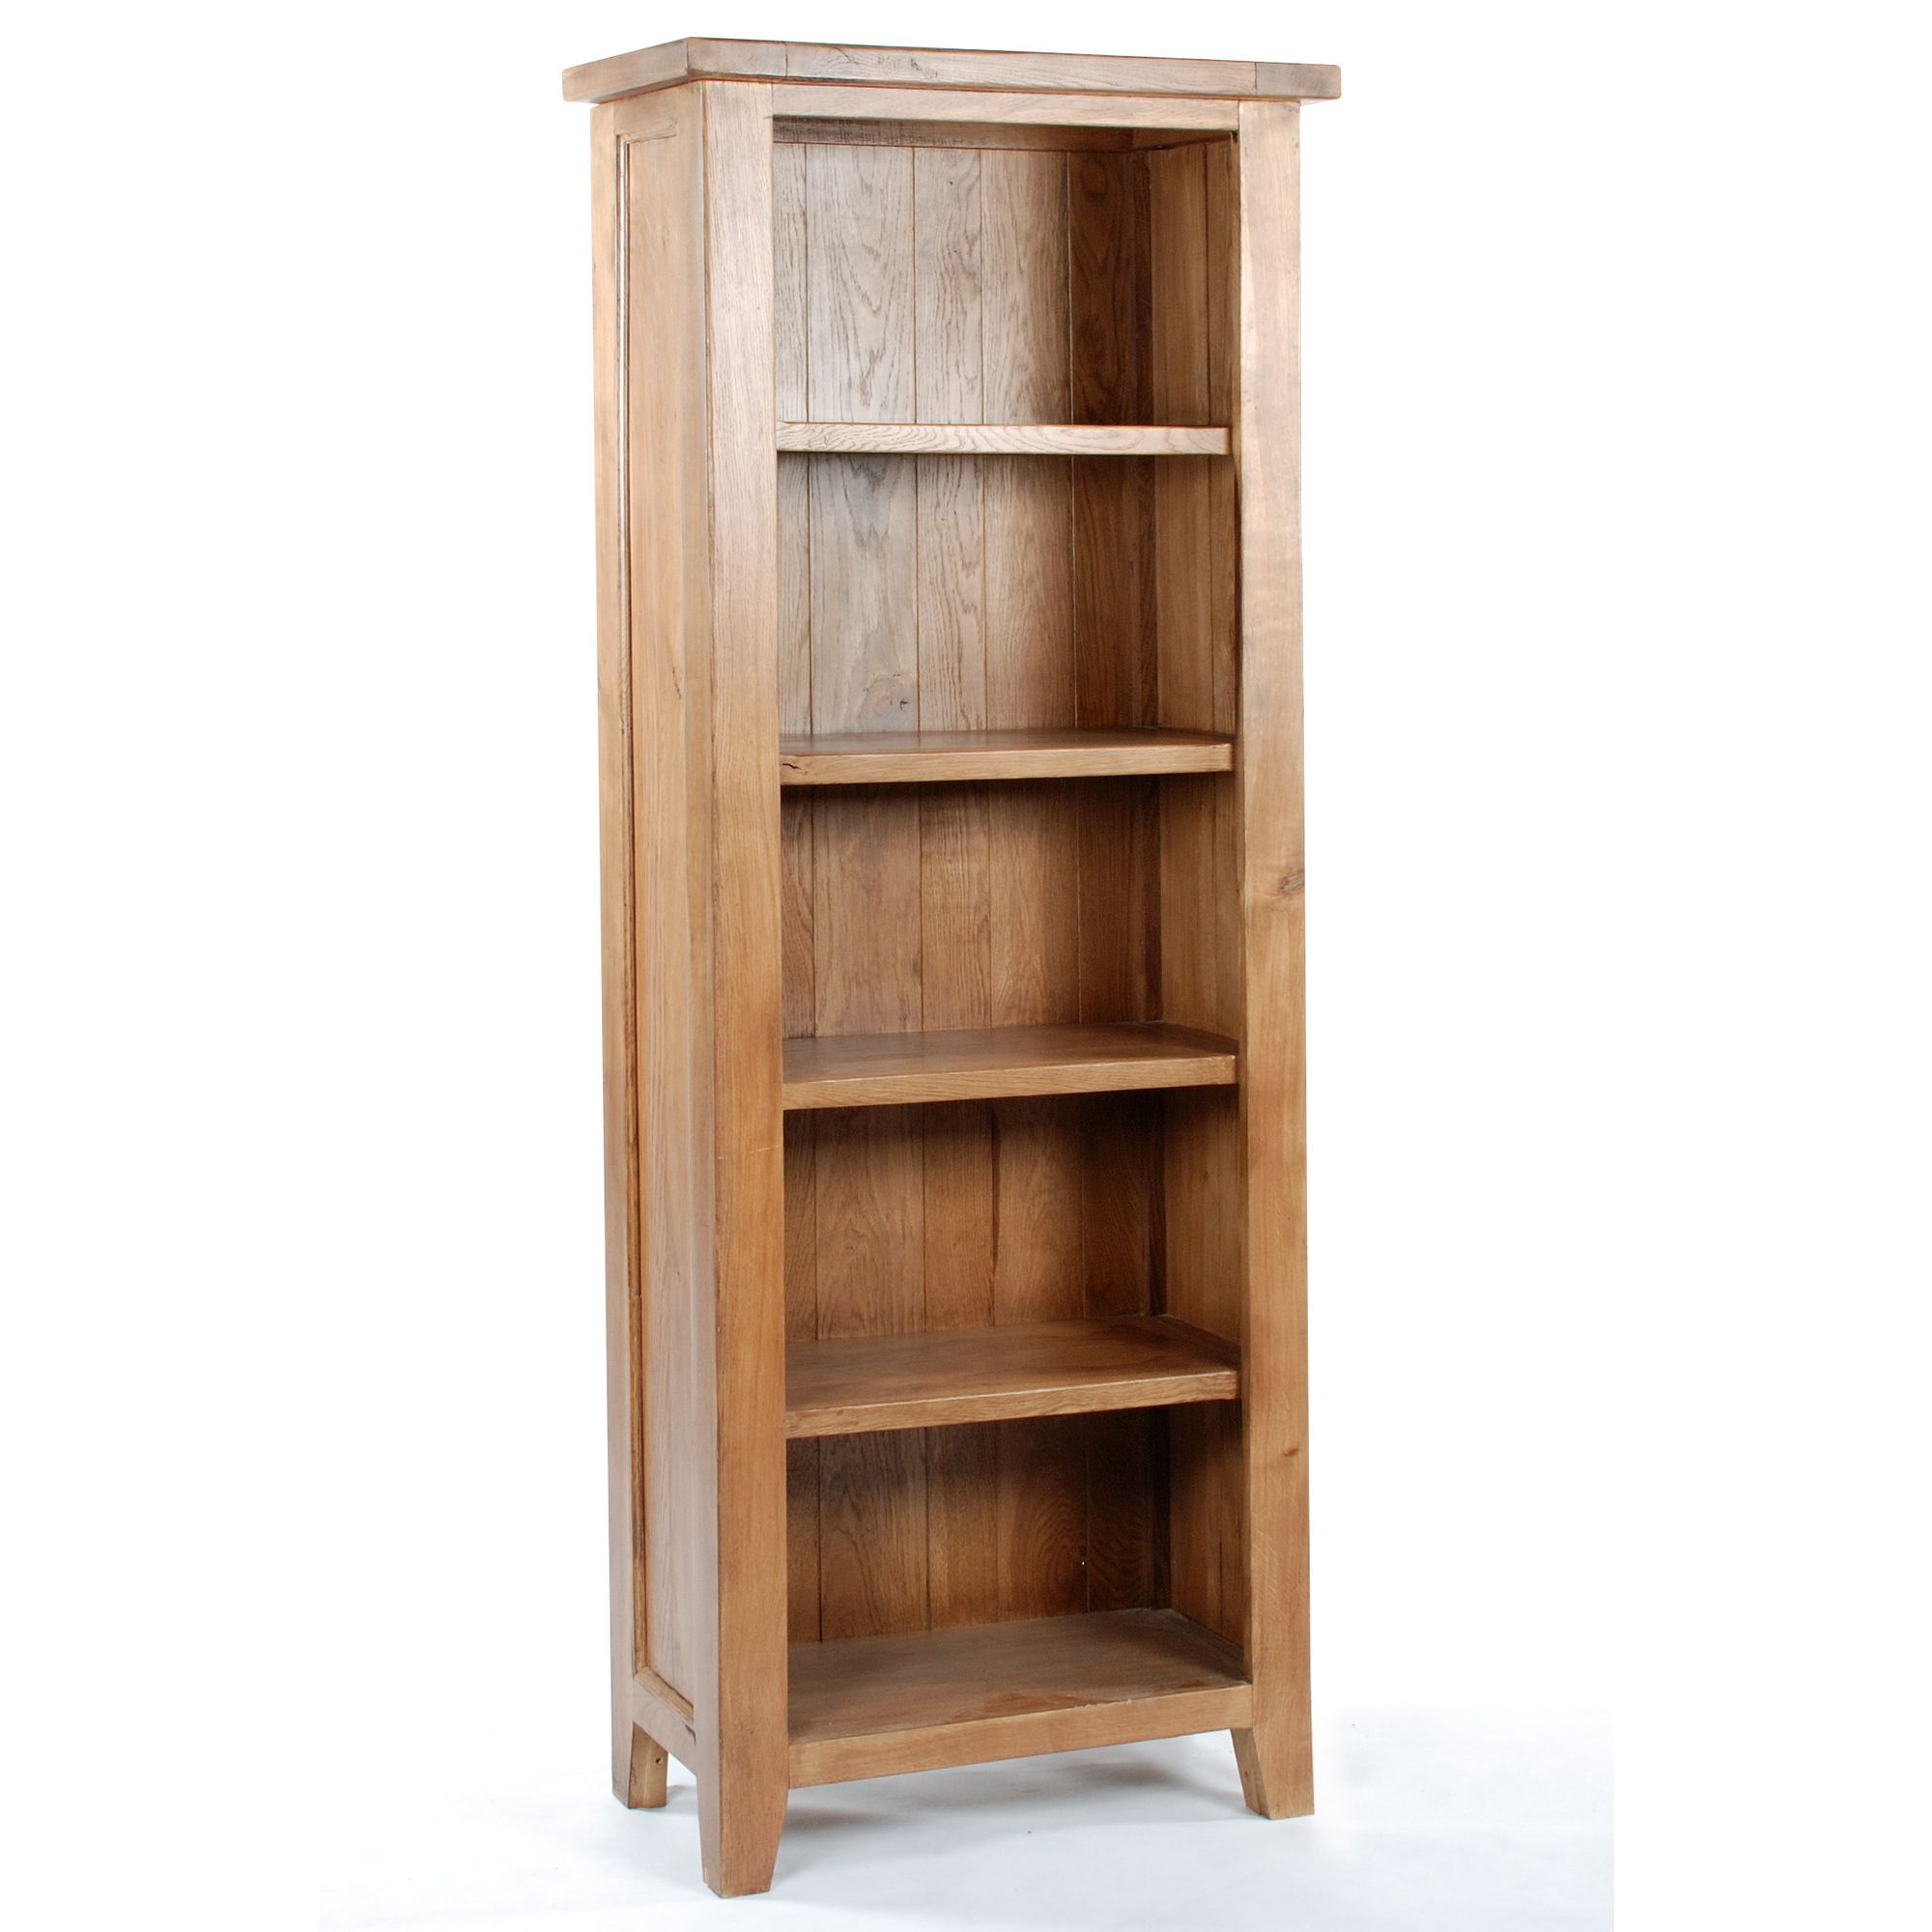 Wiseaction Florence Bookcase - Small at Tesco Direct